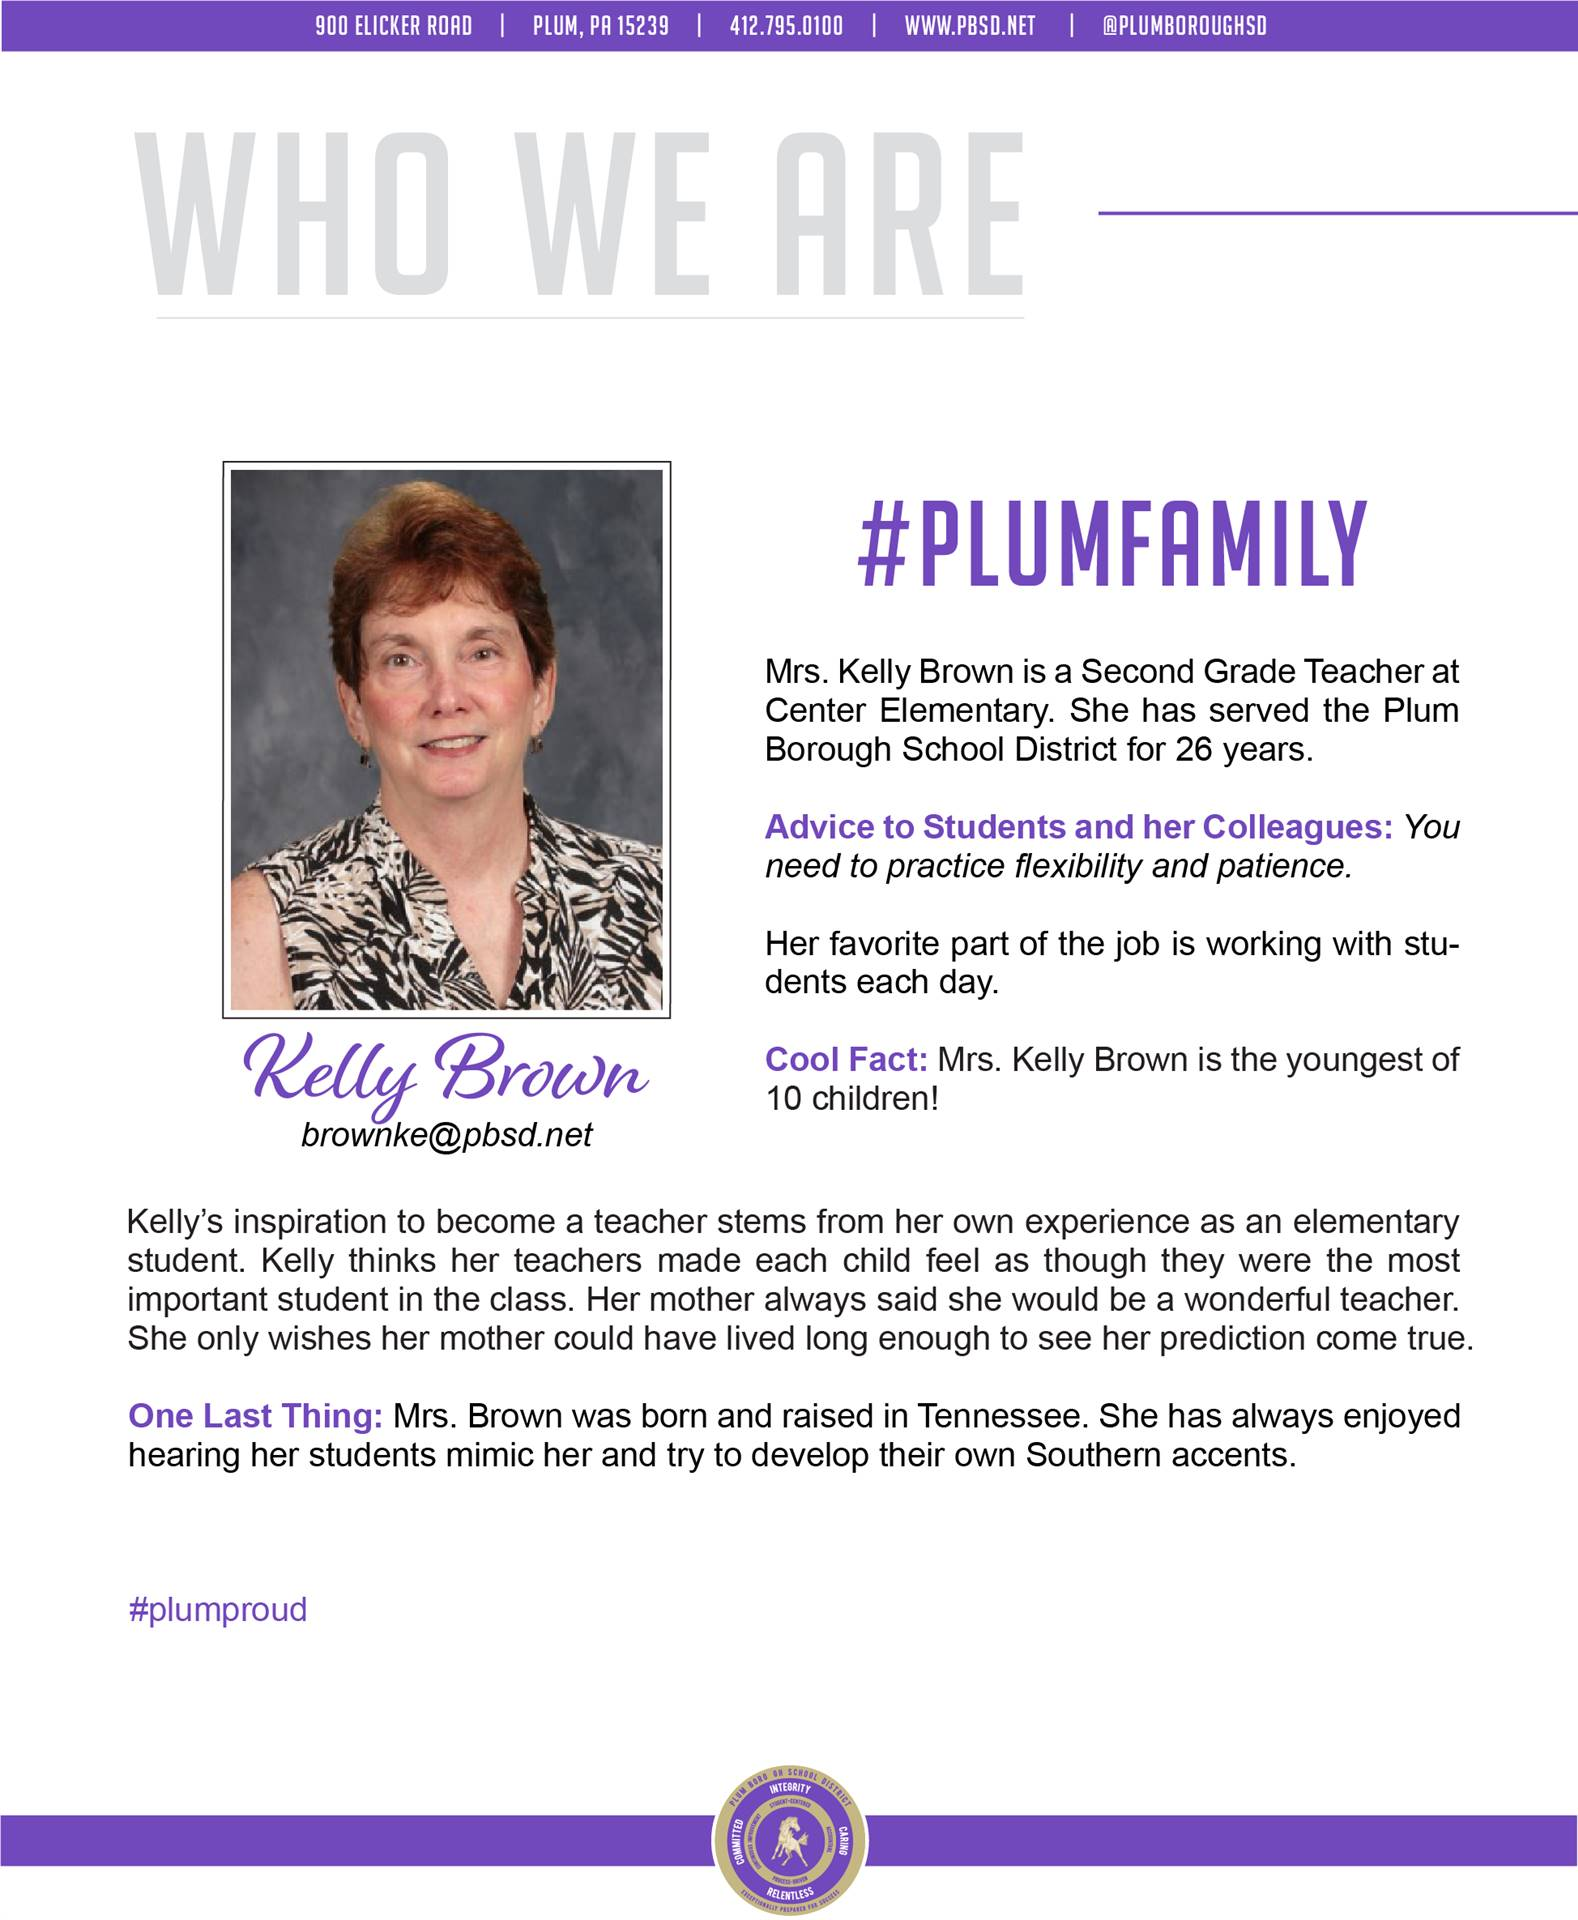 Who We Are Wednesday features Kelly Brown.